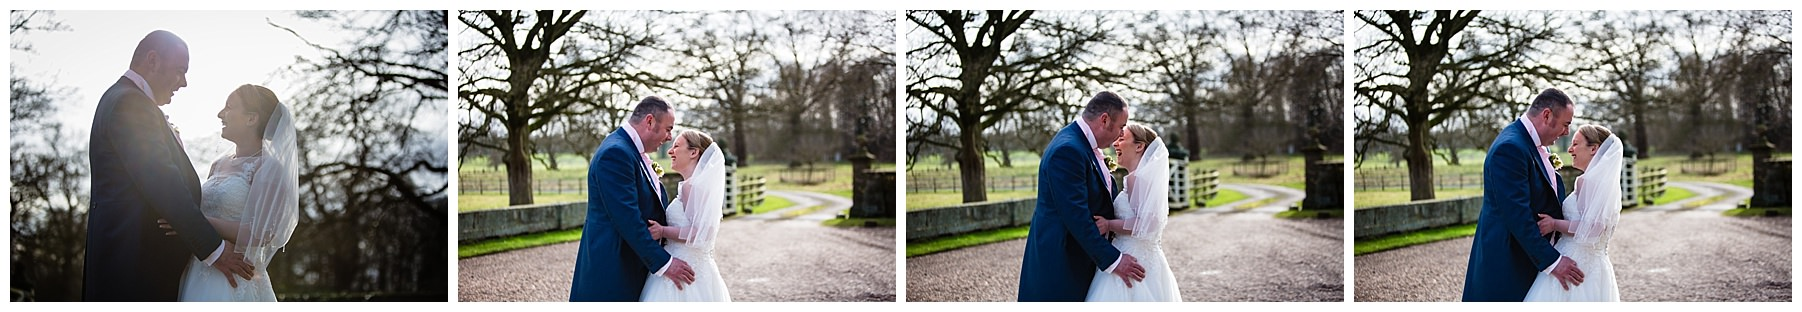 candid photos of the bride and groom giggling at iscoyd park wedding in natural warm sunlight - shropshire photographer